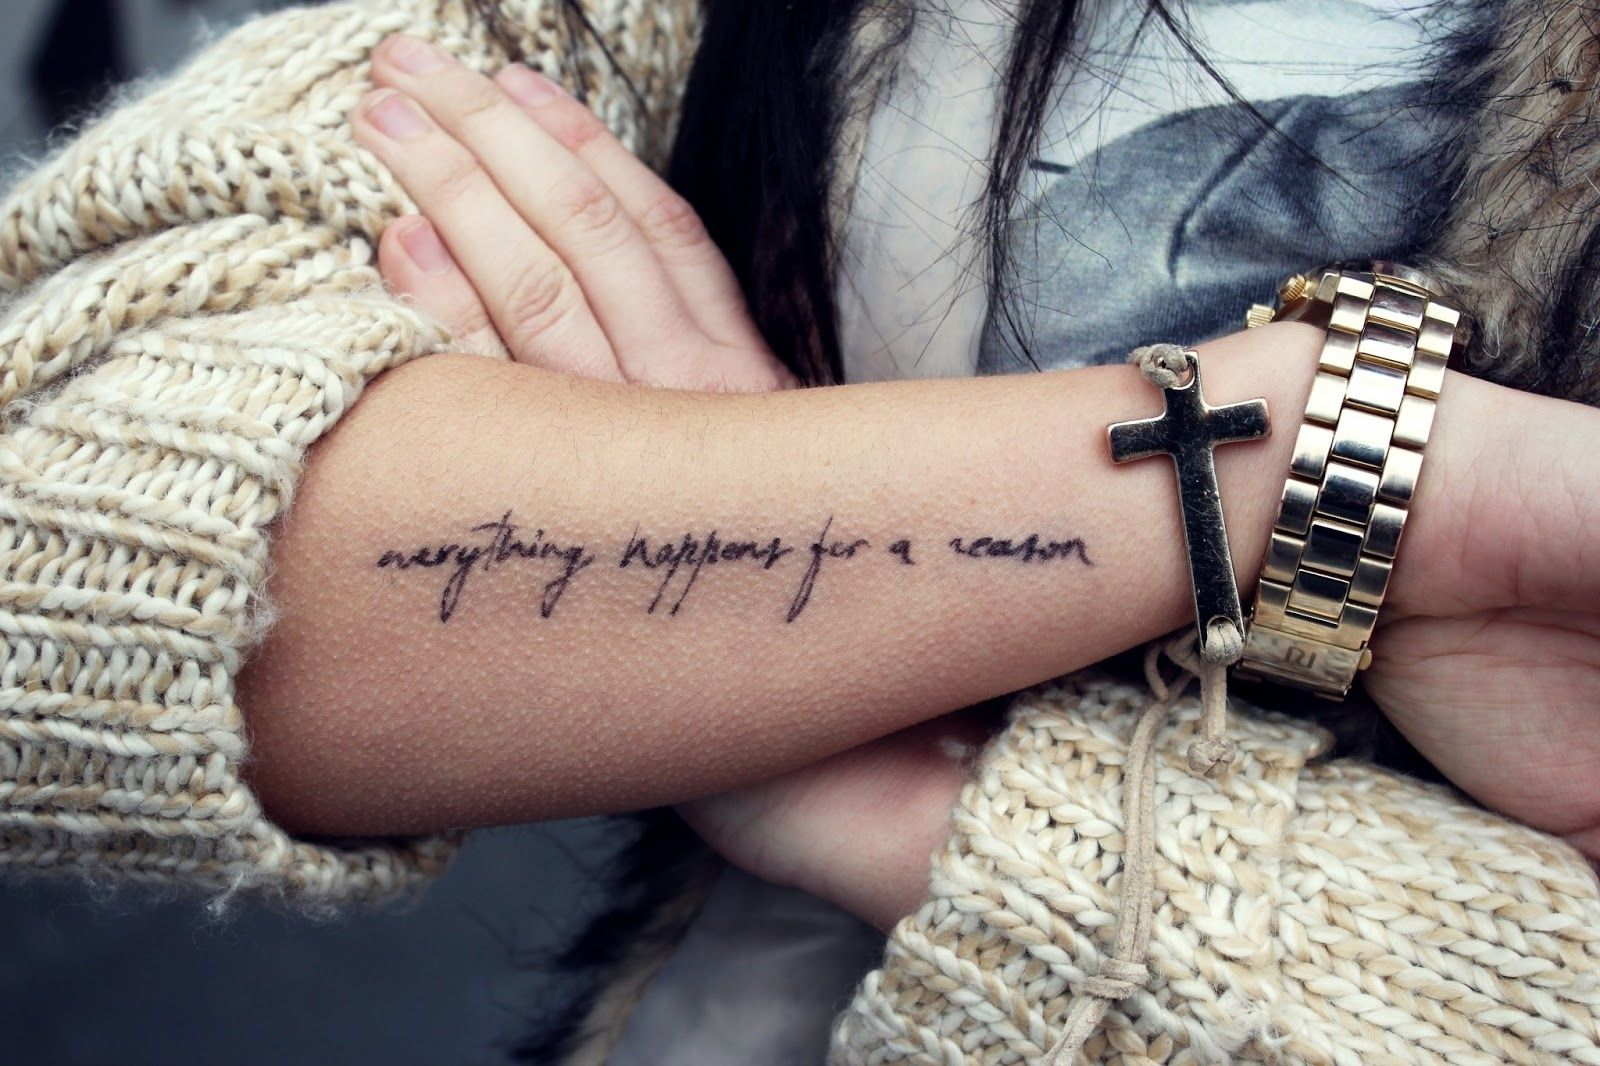 Inspiring Quote Tattoo Design Ideas On Hand For Women And Men Handwriting Tattoos Tattoos Tattoo Quotes